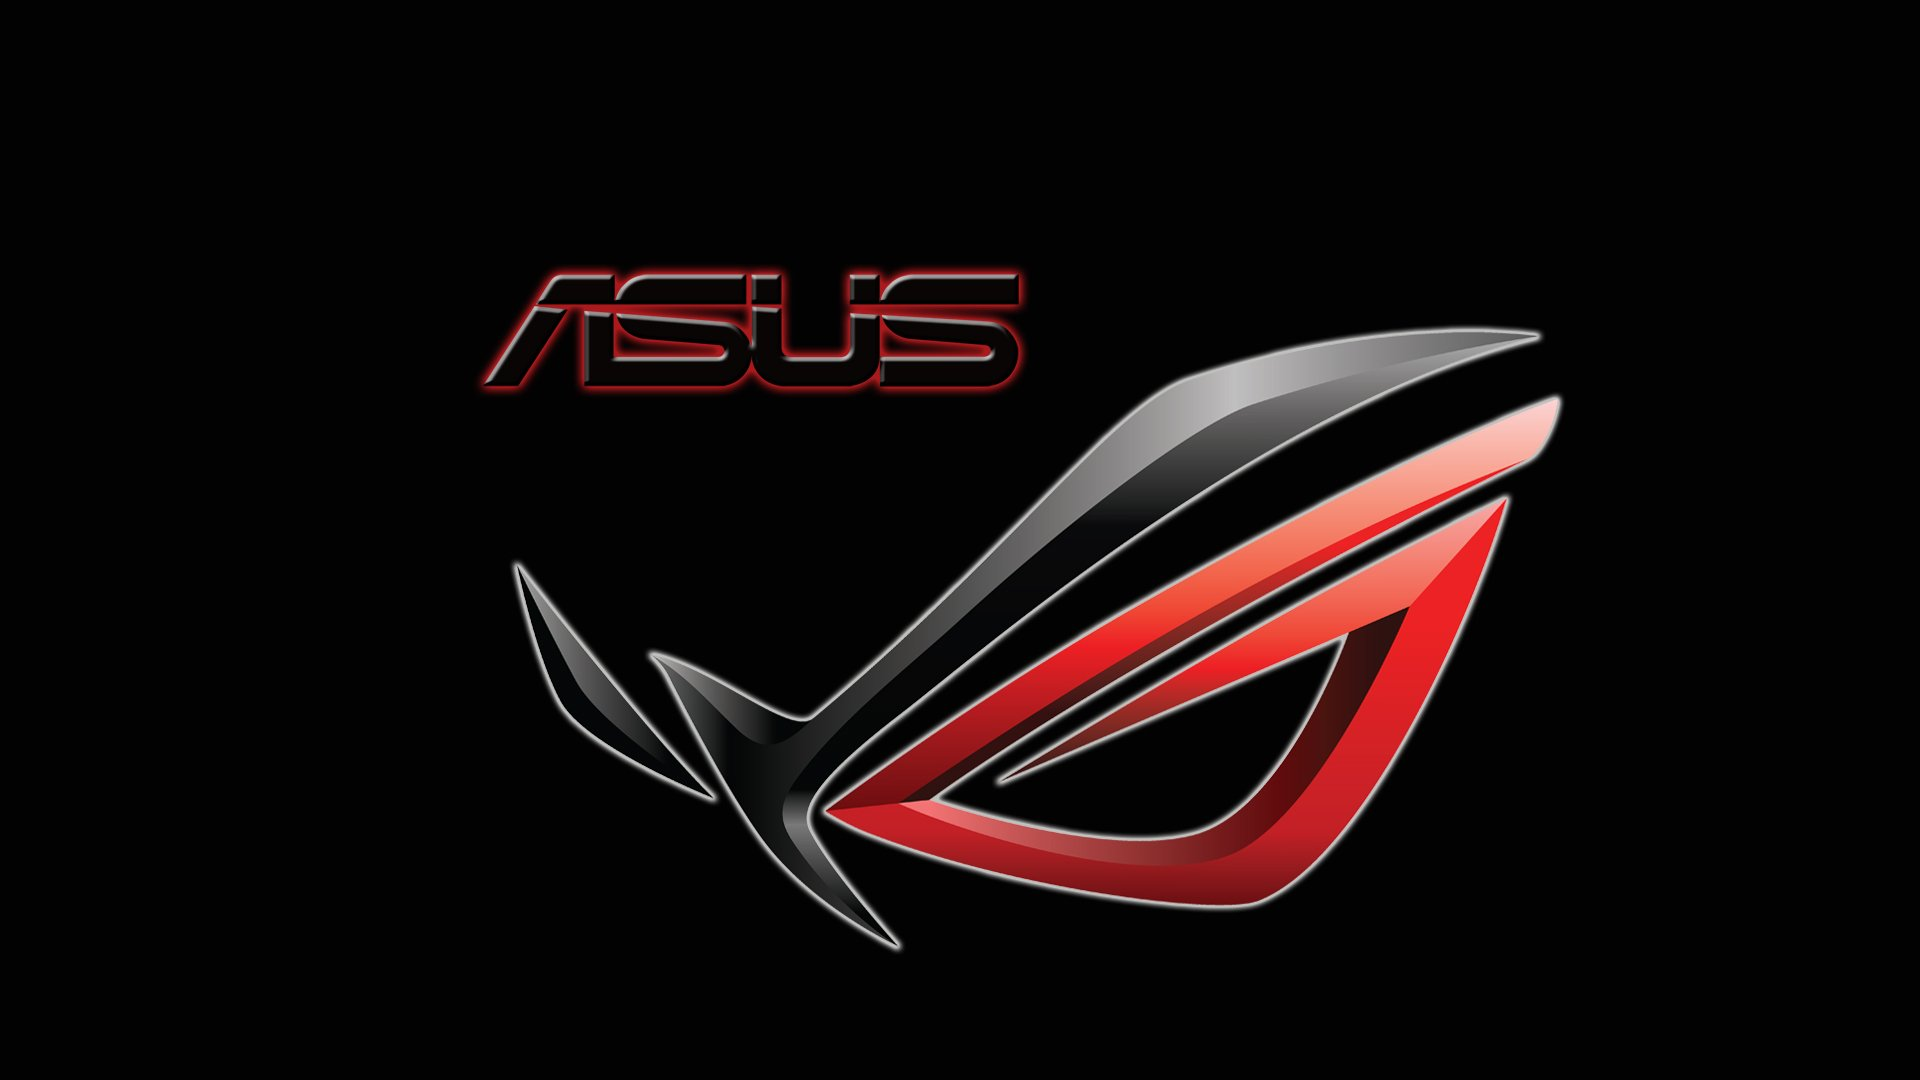 167 Asus Hd Wallpapers Background Images Wallpaper Abyss